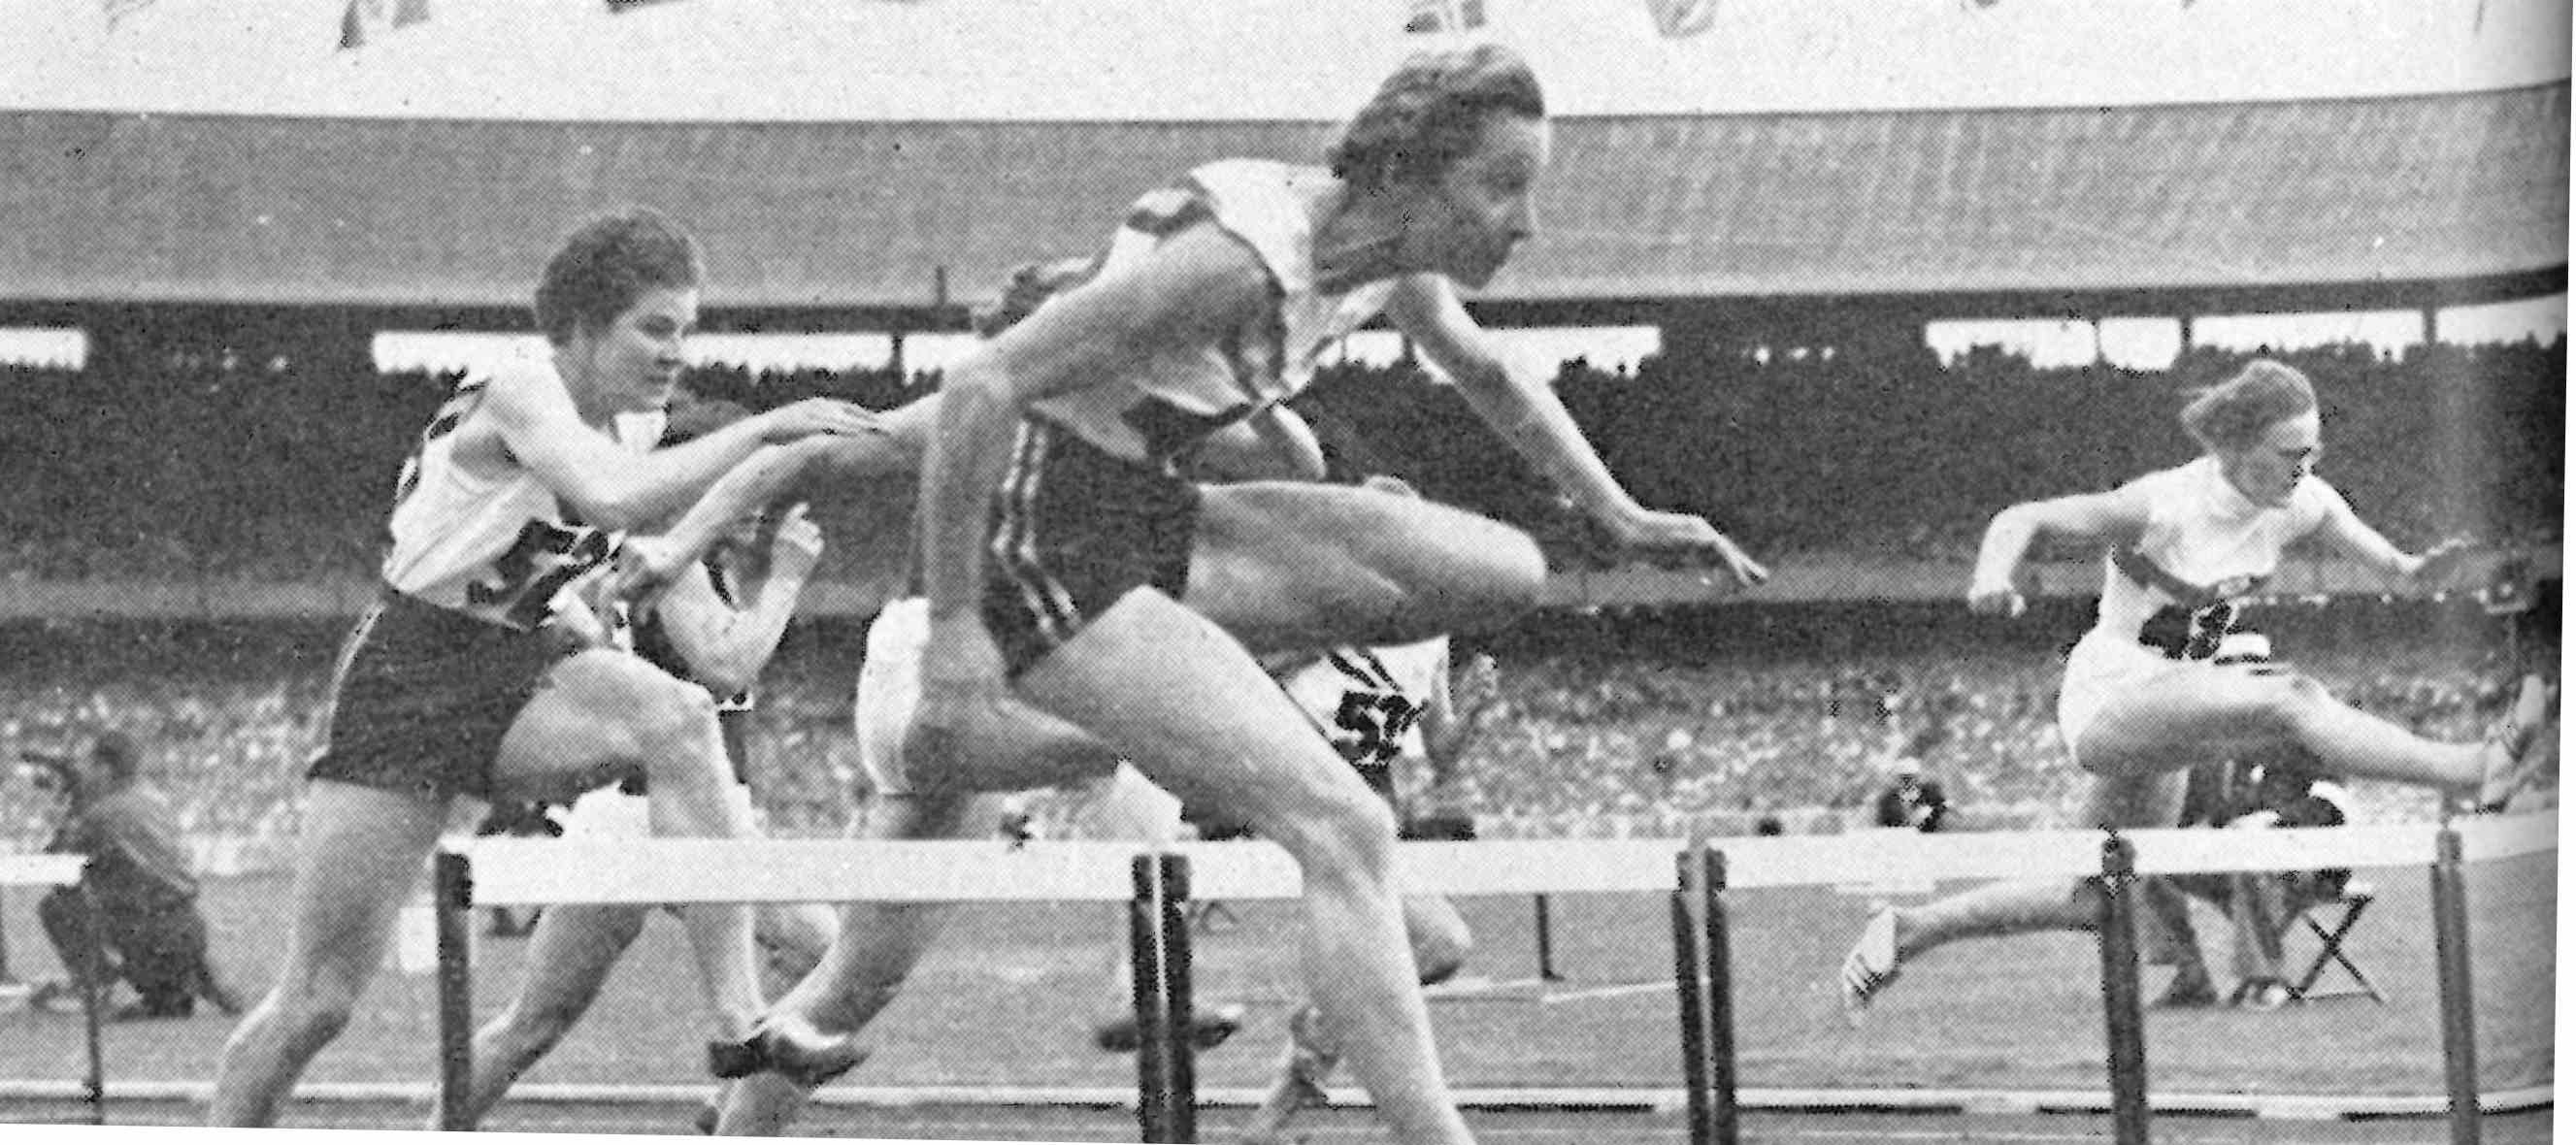 Melbourne 1956 Olympics - Shirley Strickland defends her Olympic title